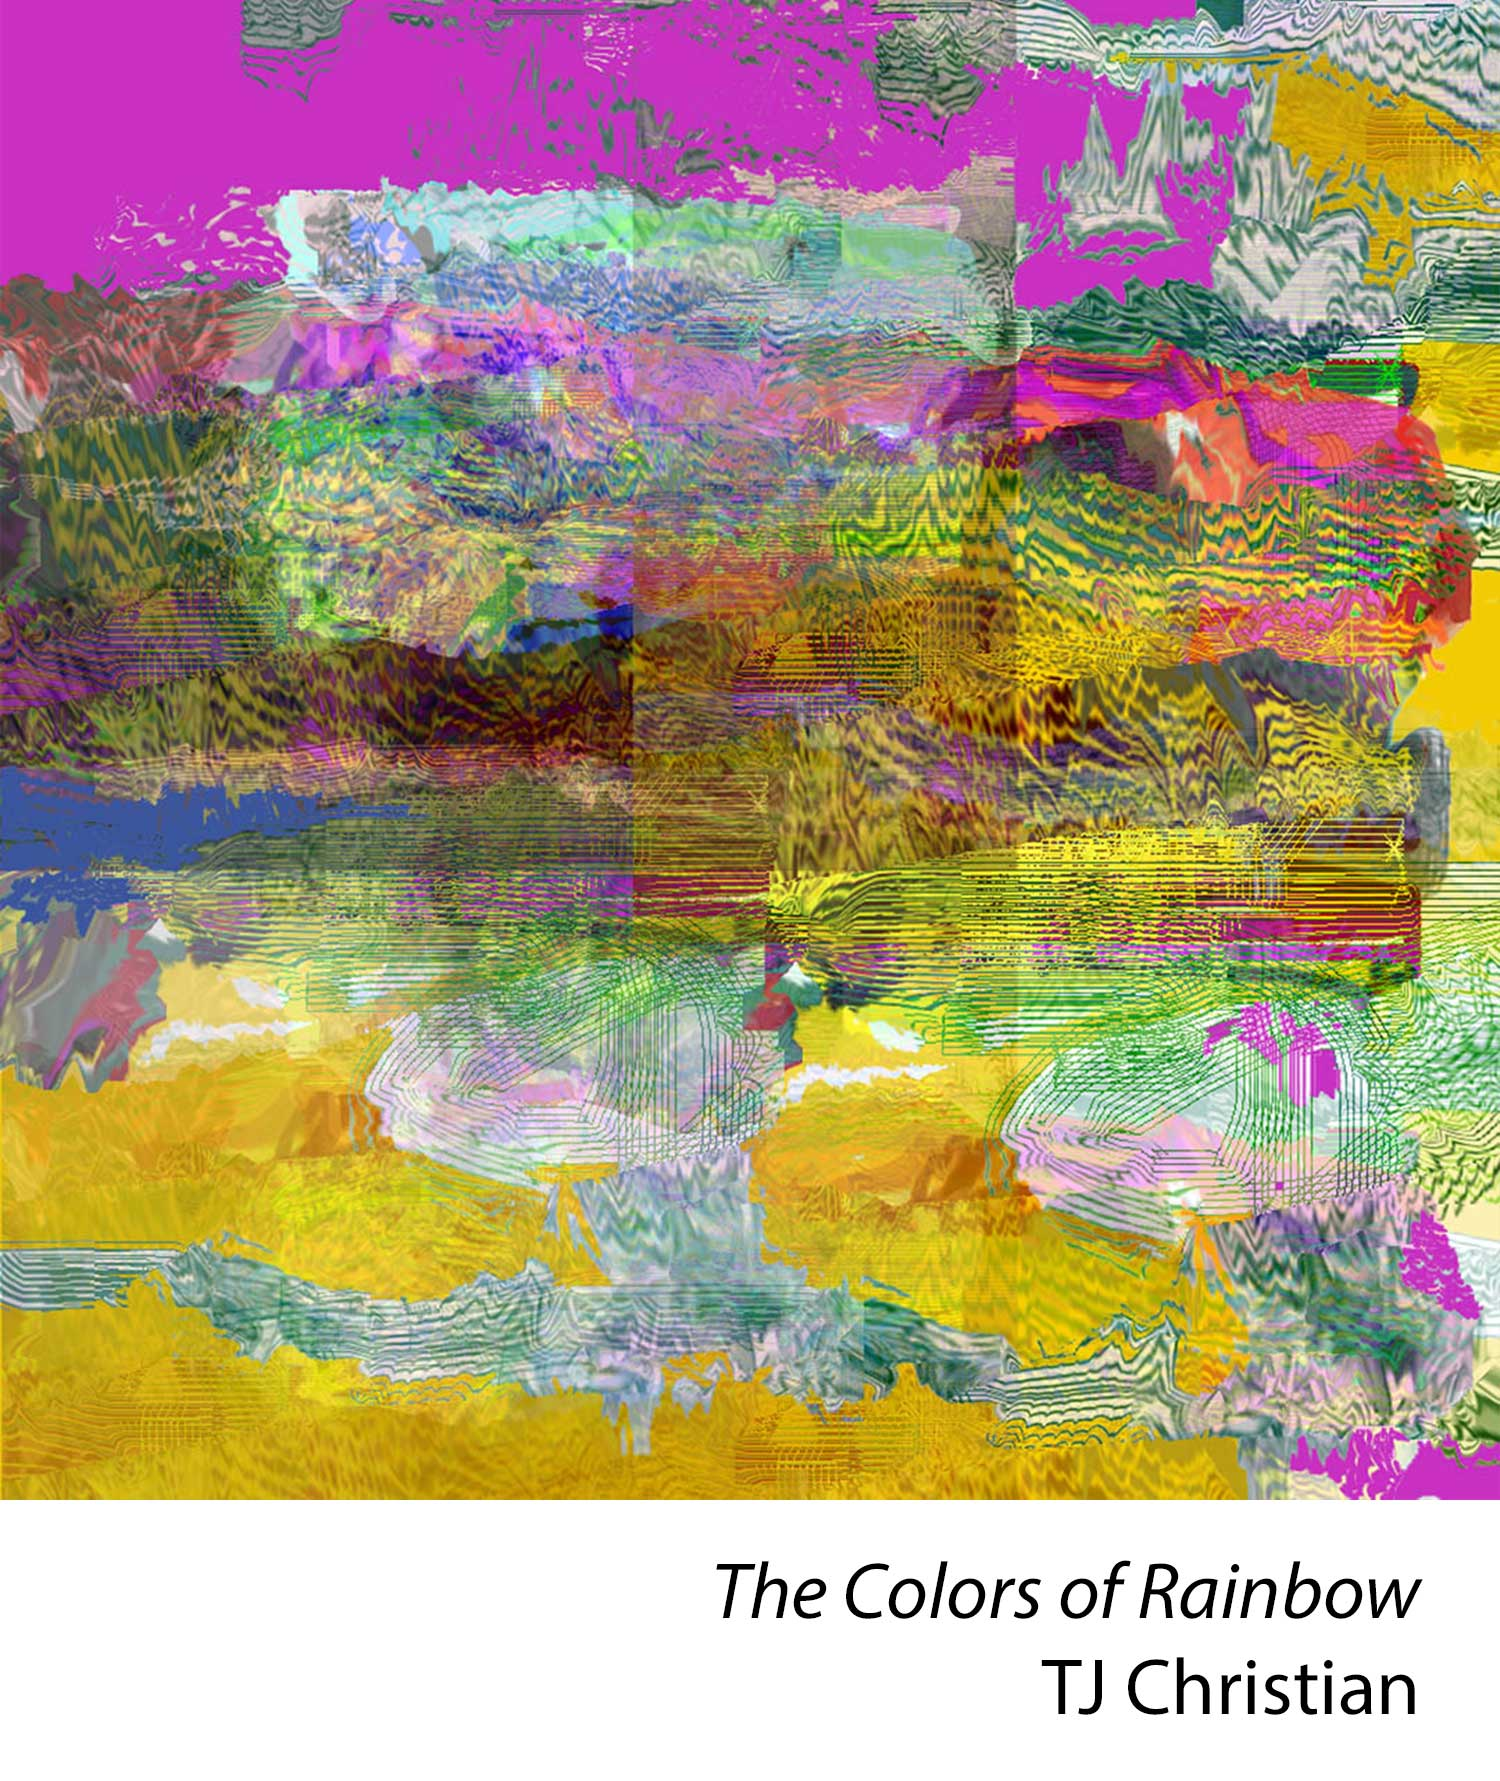 The Colors of Rainbow by TJ Christian